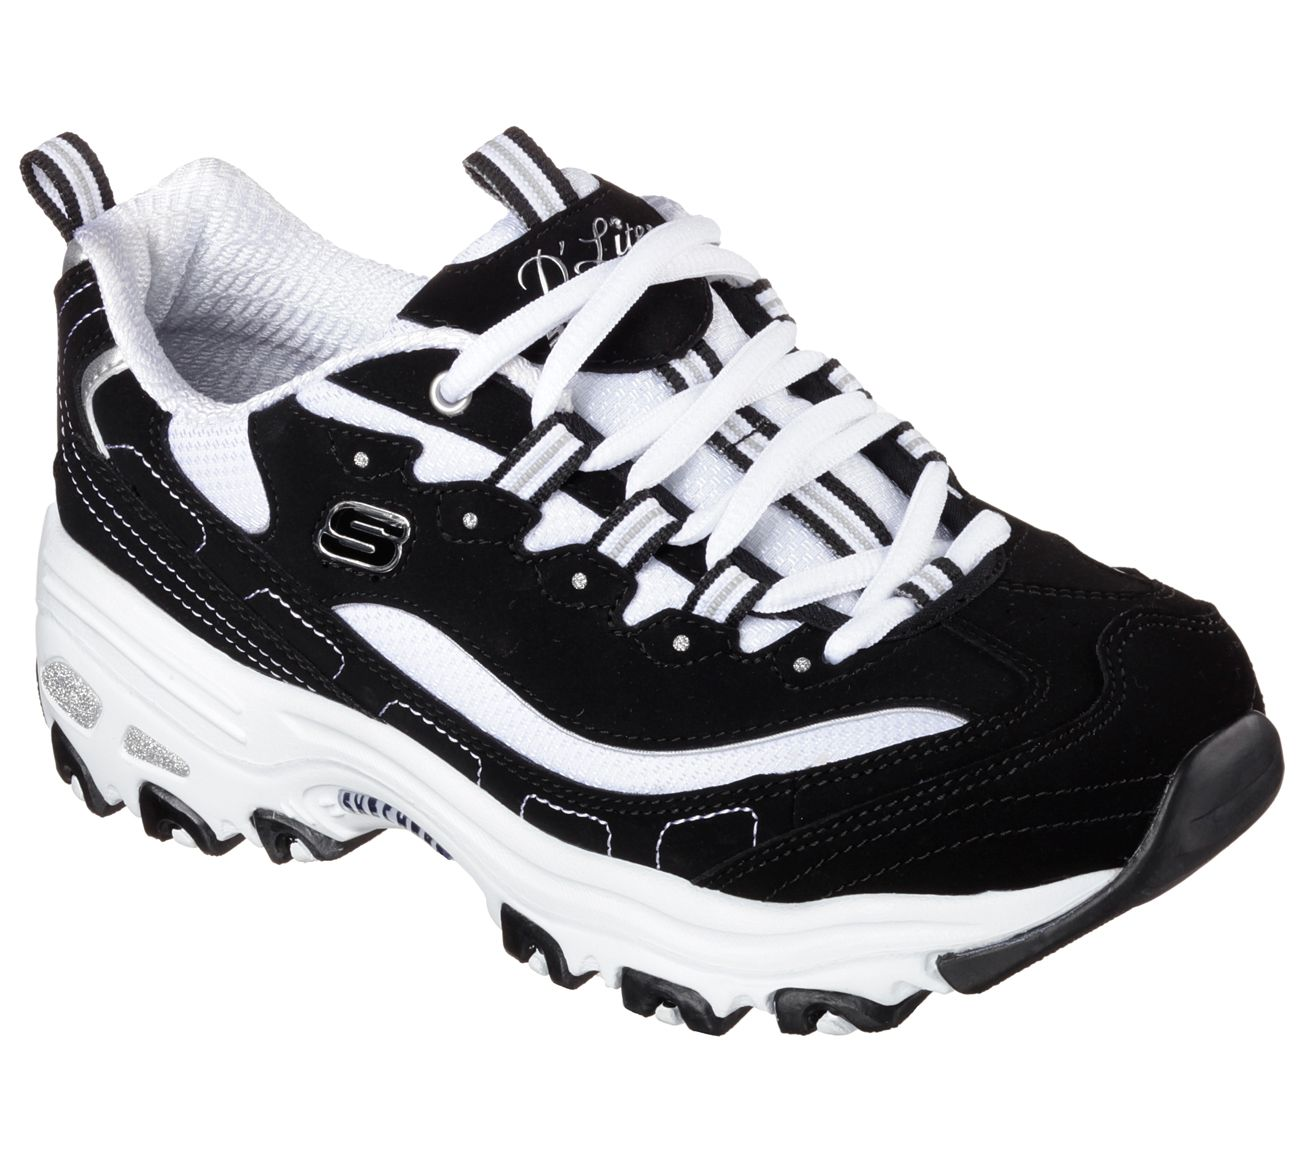 b9017cb32133 A classic look gets updated with comfort in the SKECHERS D Lites - Biggest  Fan shoe. Smooth trubuck leather and fabric upper in a lace up sporty  casual ...